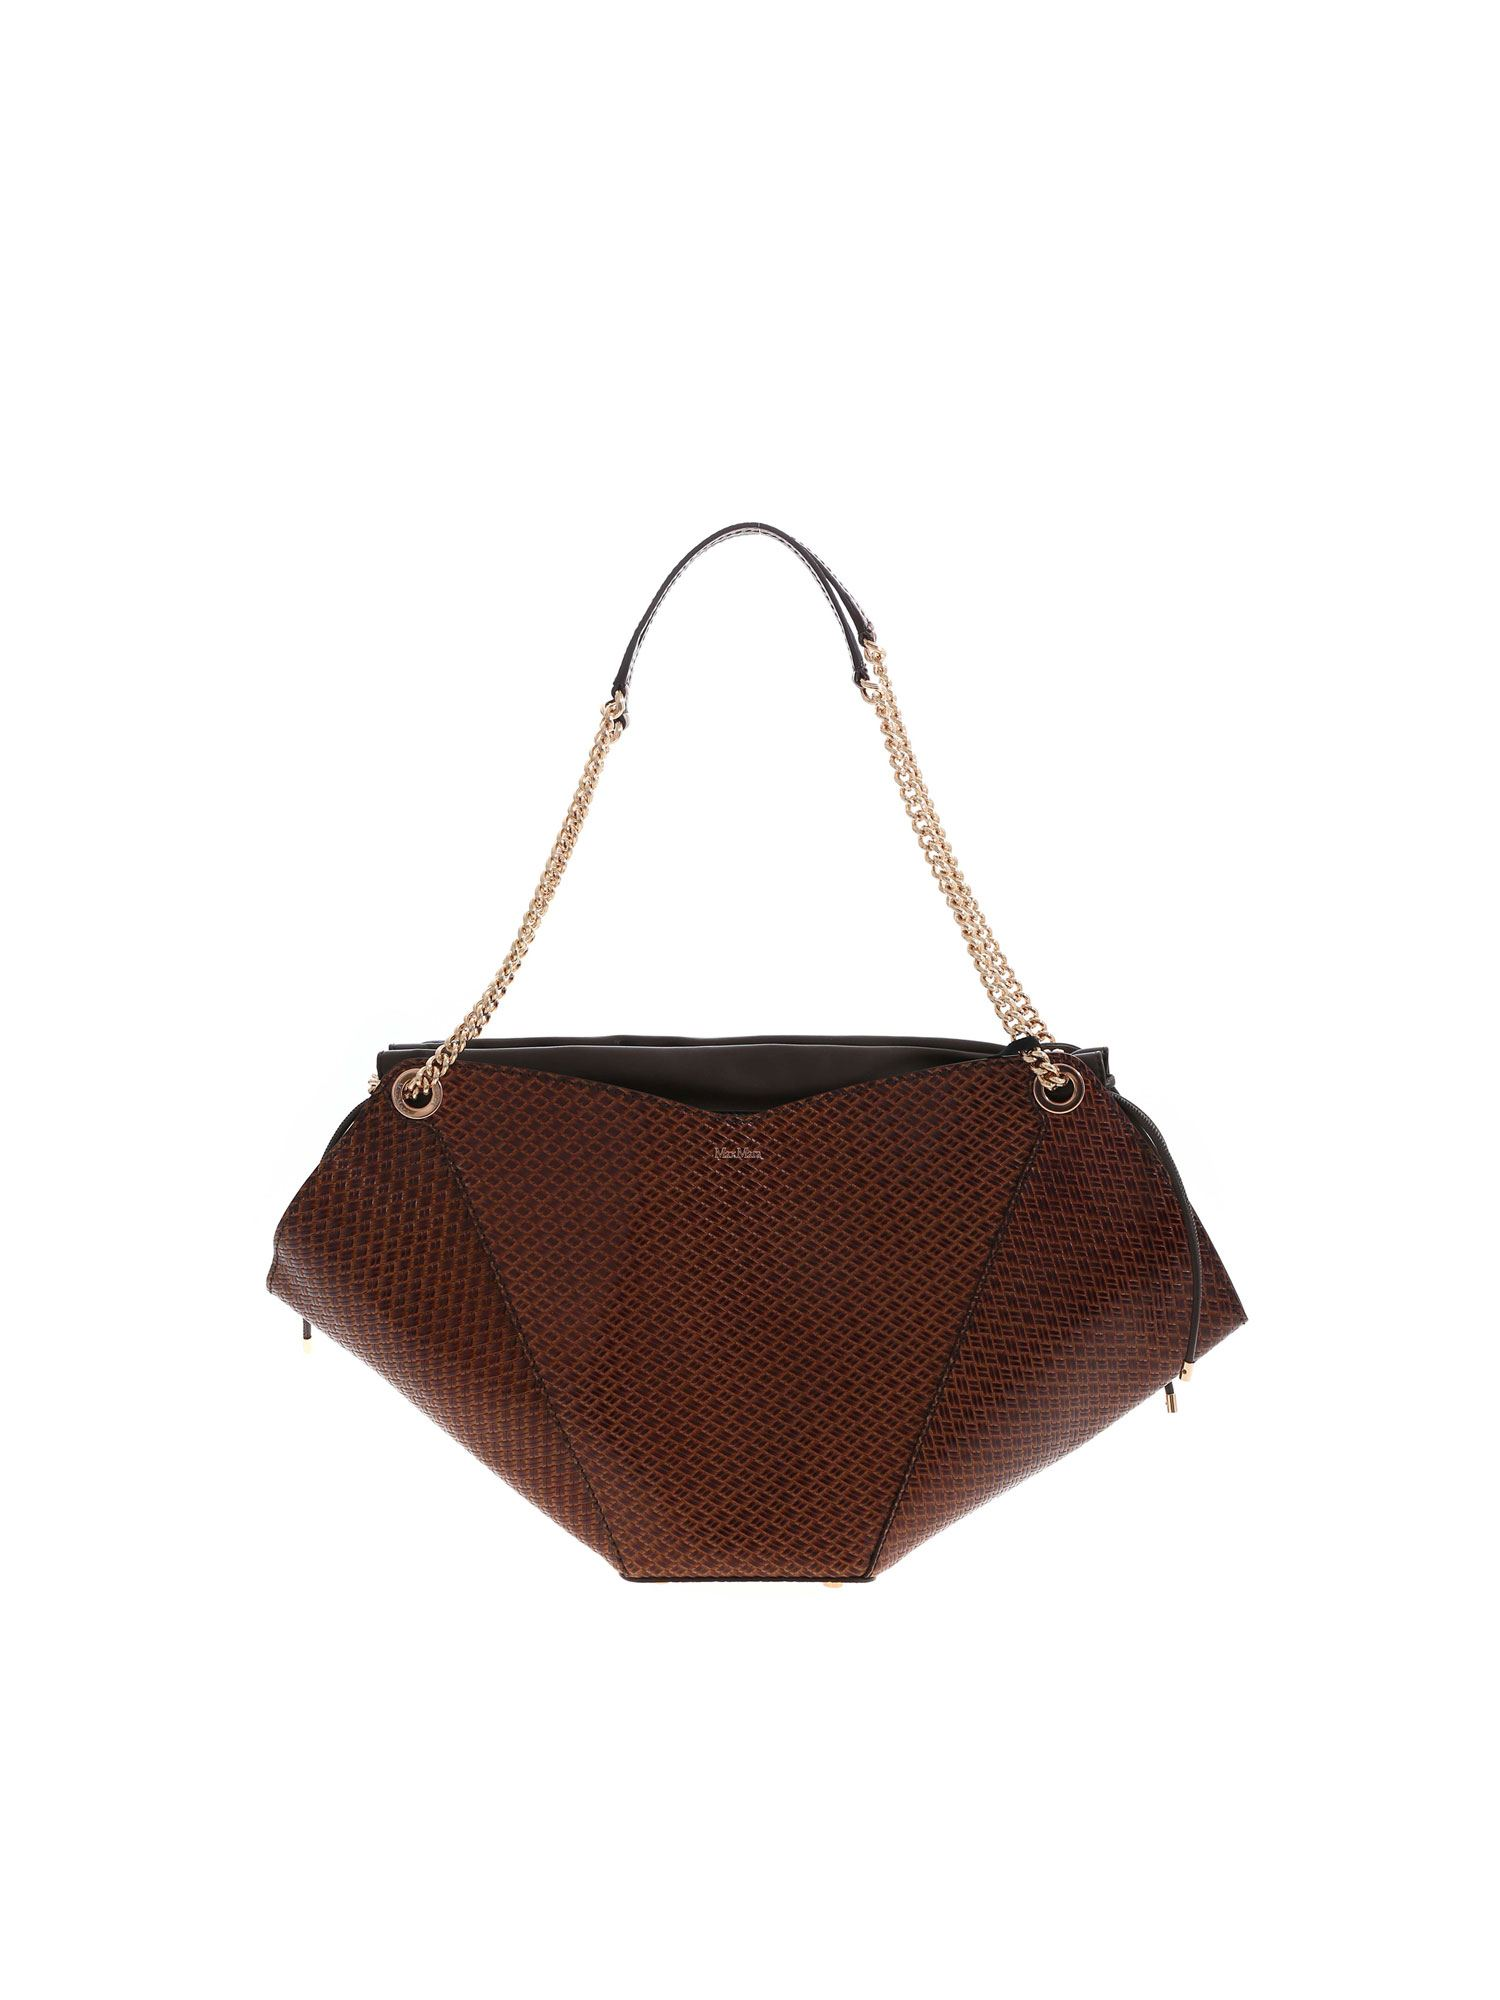 Max Mara FLOWERM SHOULDER BAG IN BROWN